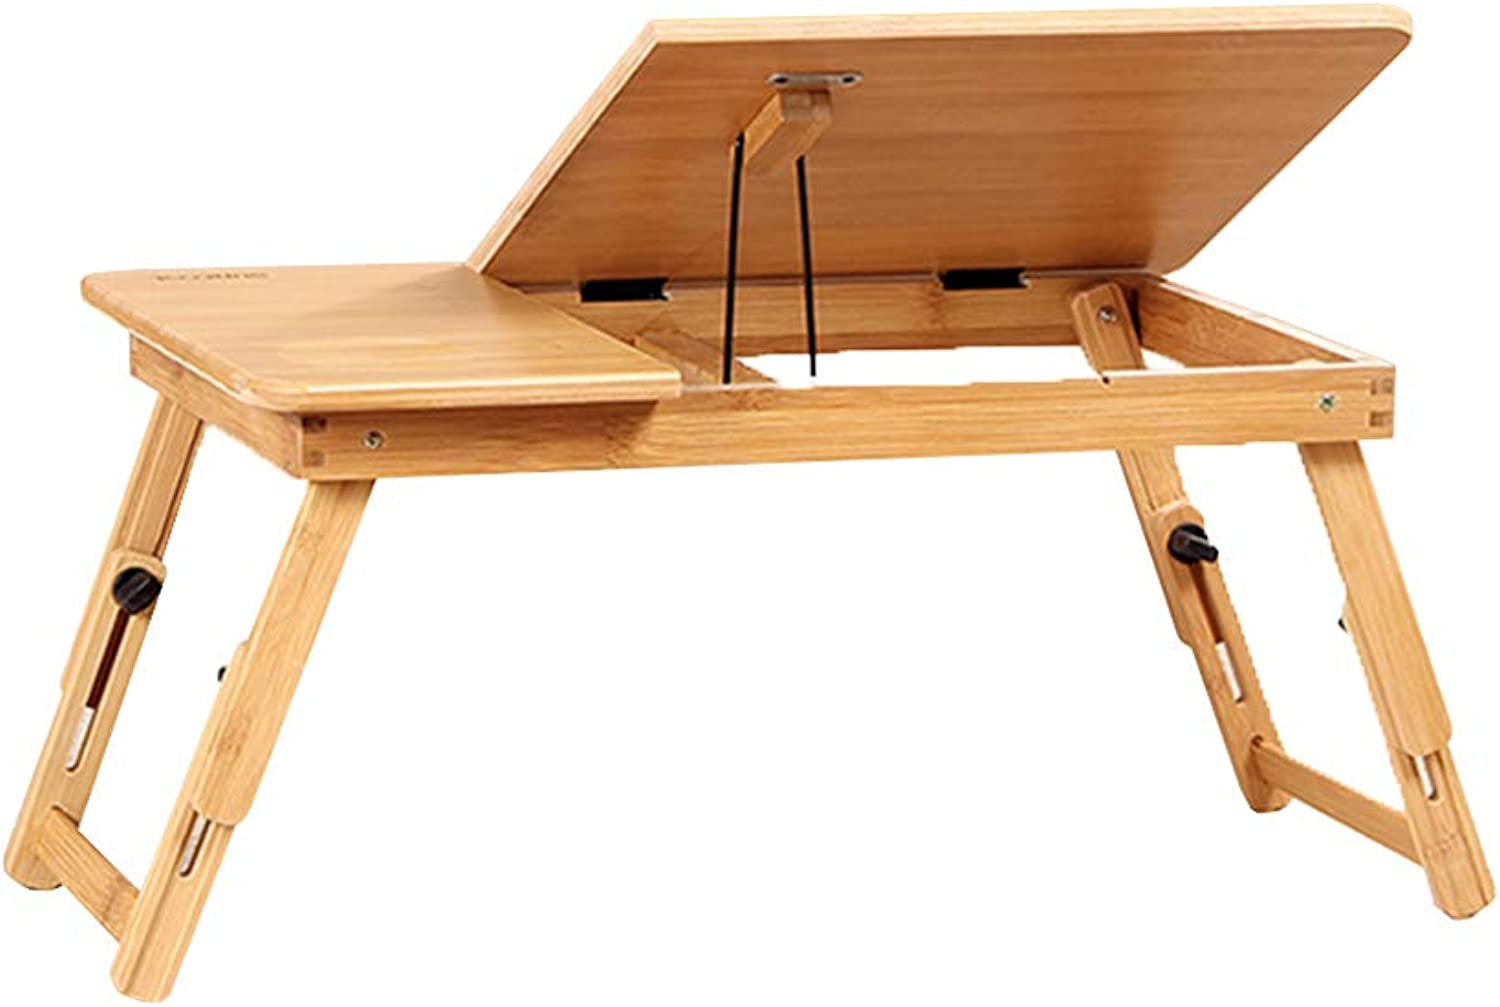 LVZAIXI Portable Folding Laptop Desk with Adjustable Height with Drawers, Multiple Size   (50  30  25cm) Without Drawers